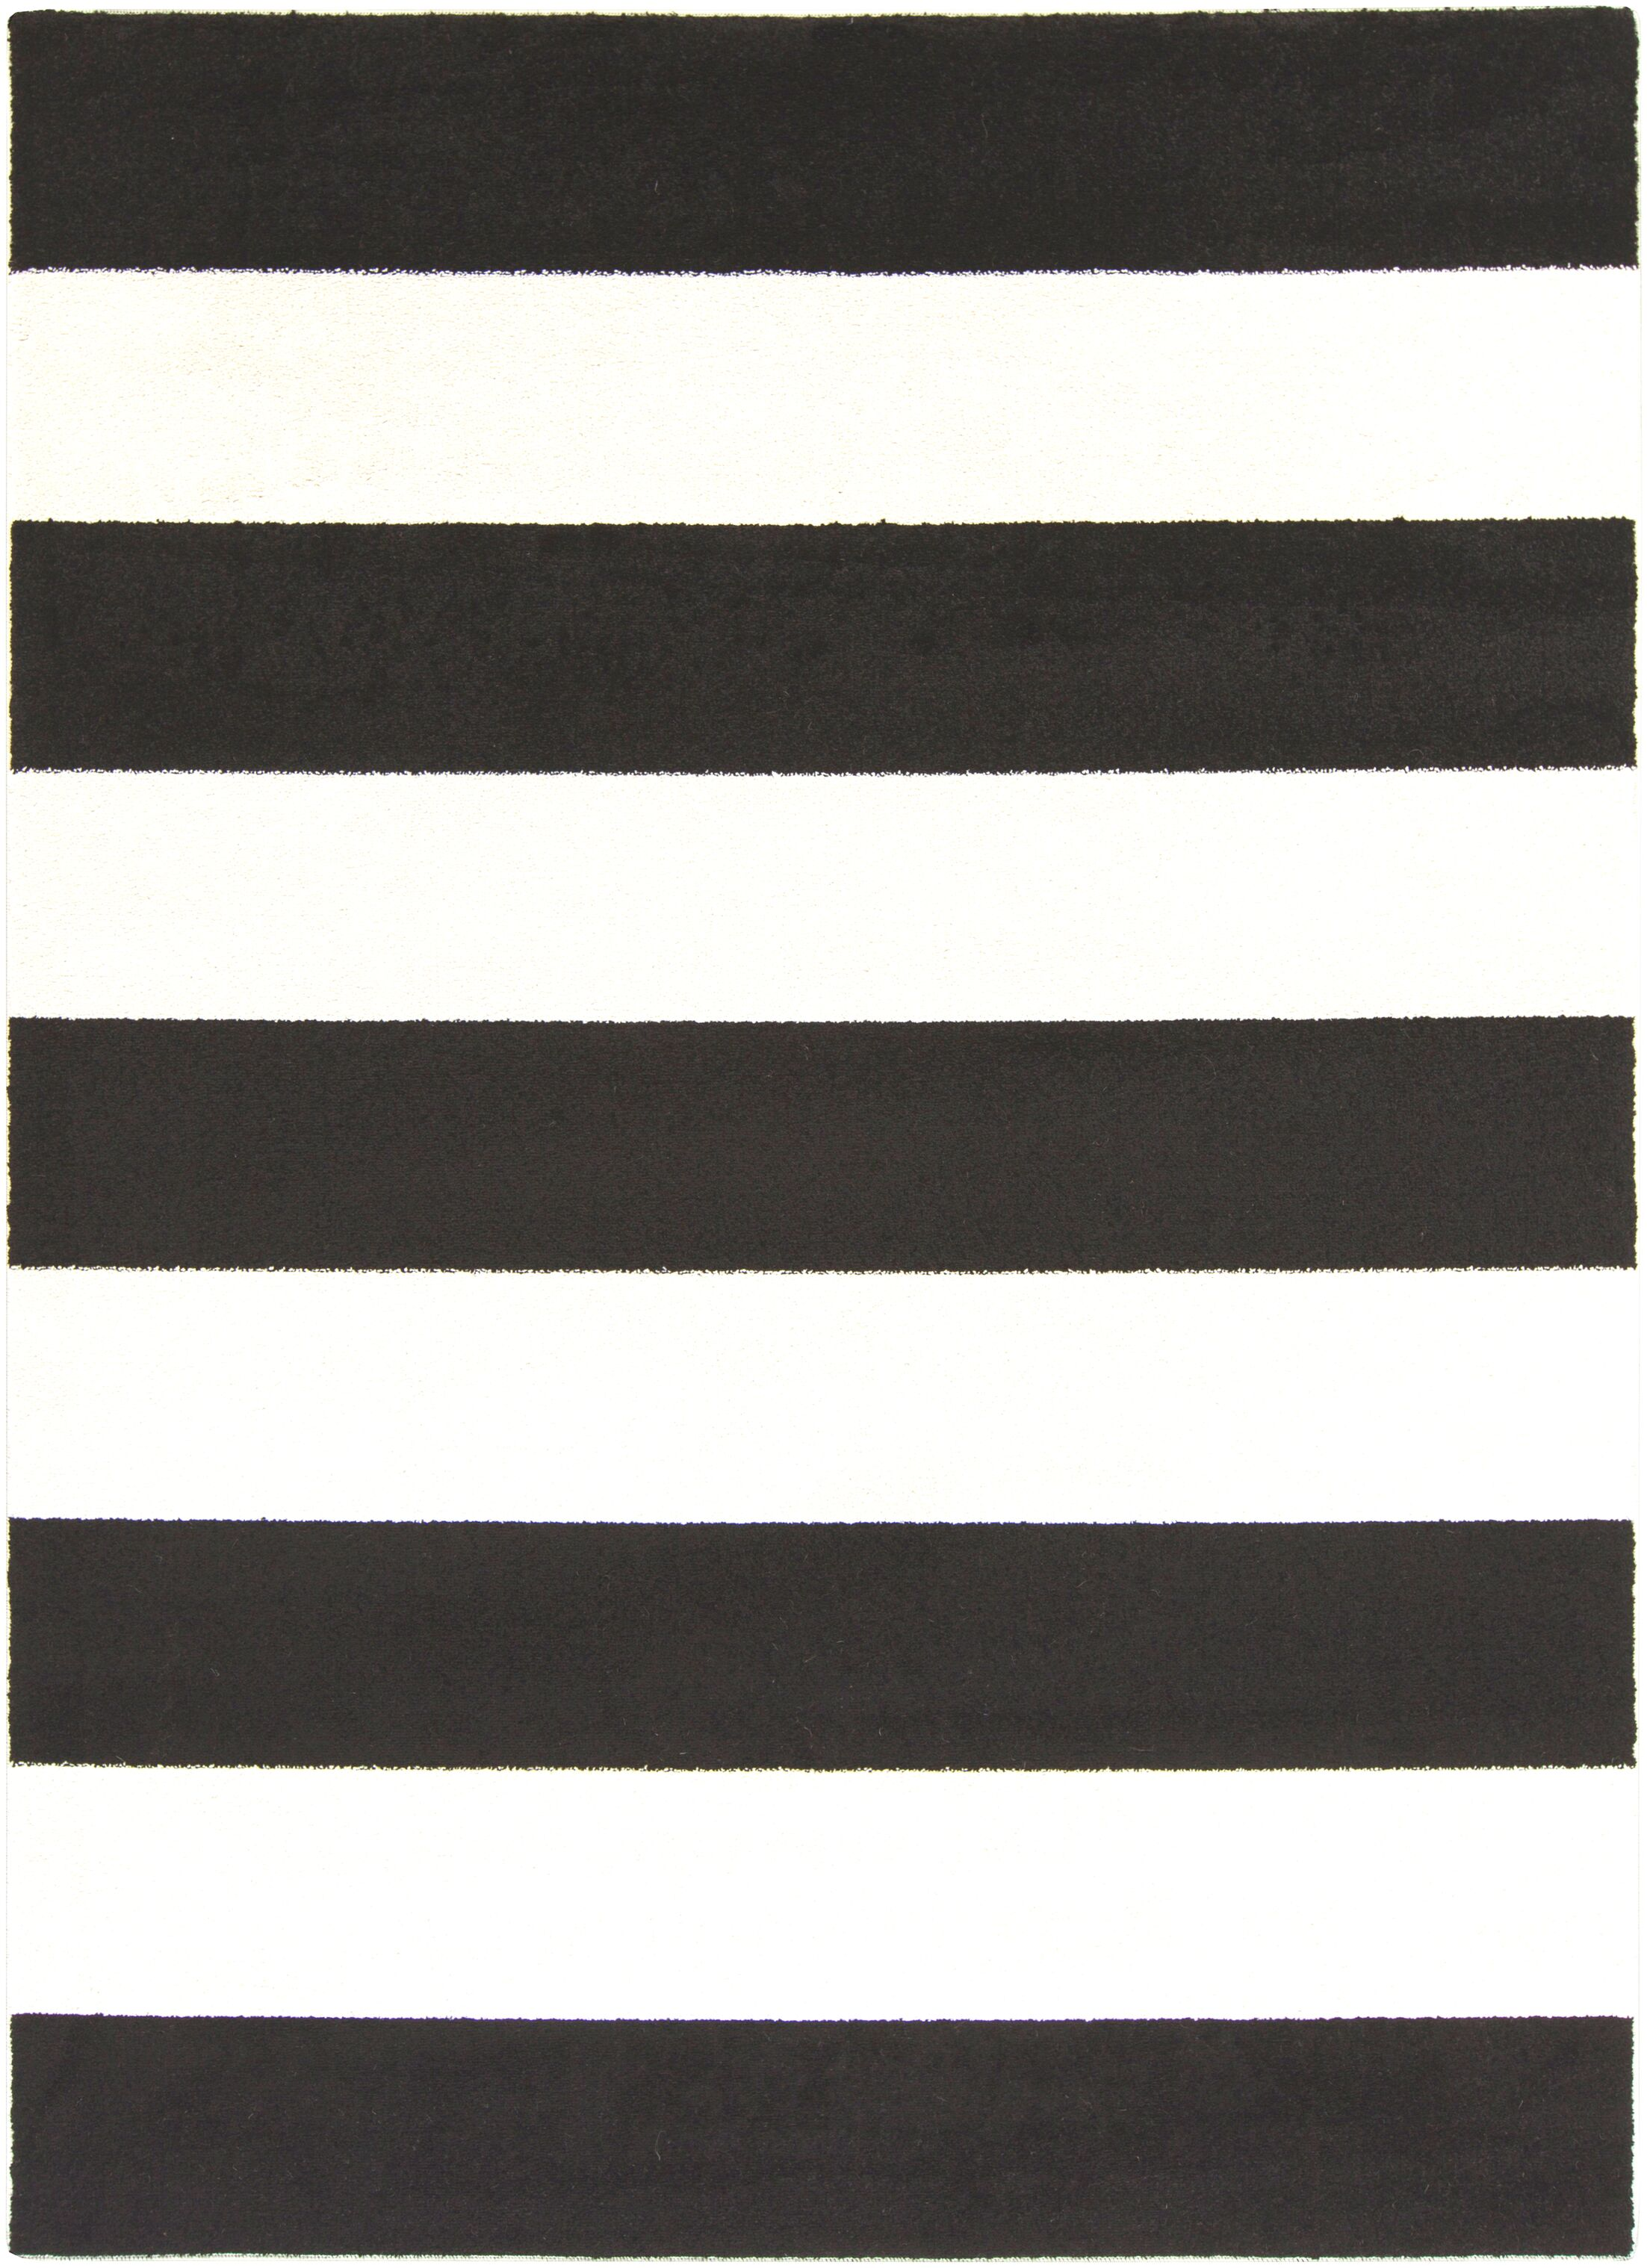 Greer Black/Cream Area Rug Rug Size: Rectangle 5'3